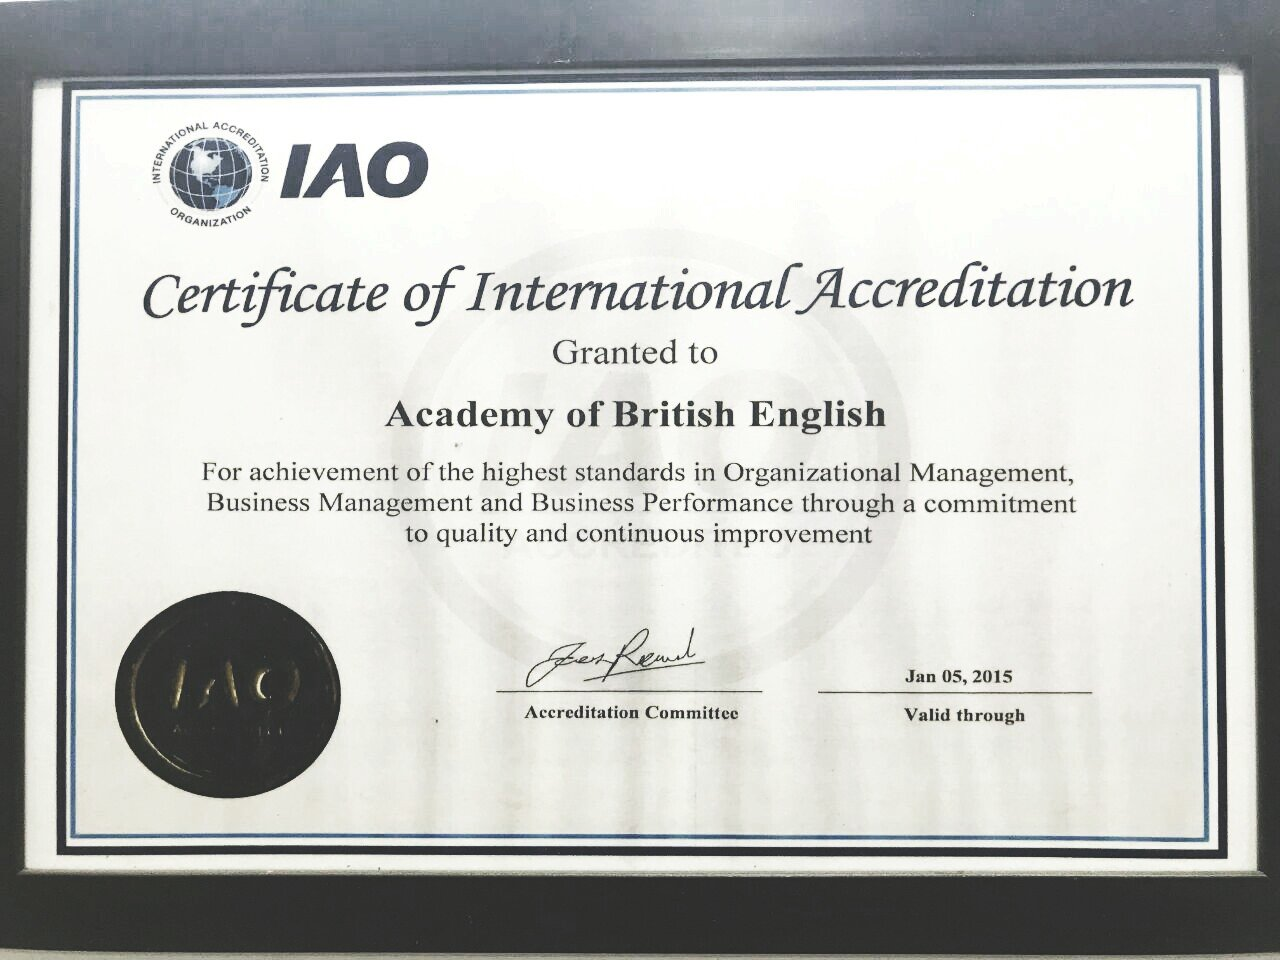 Academy of British English